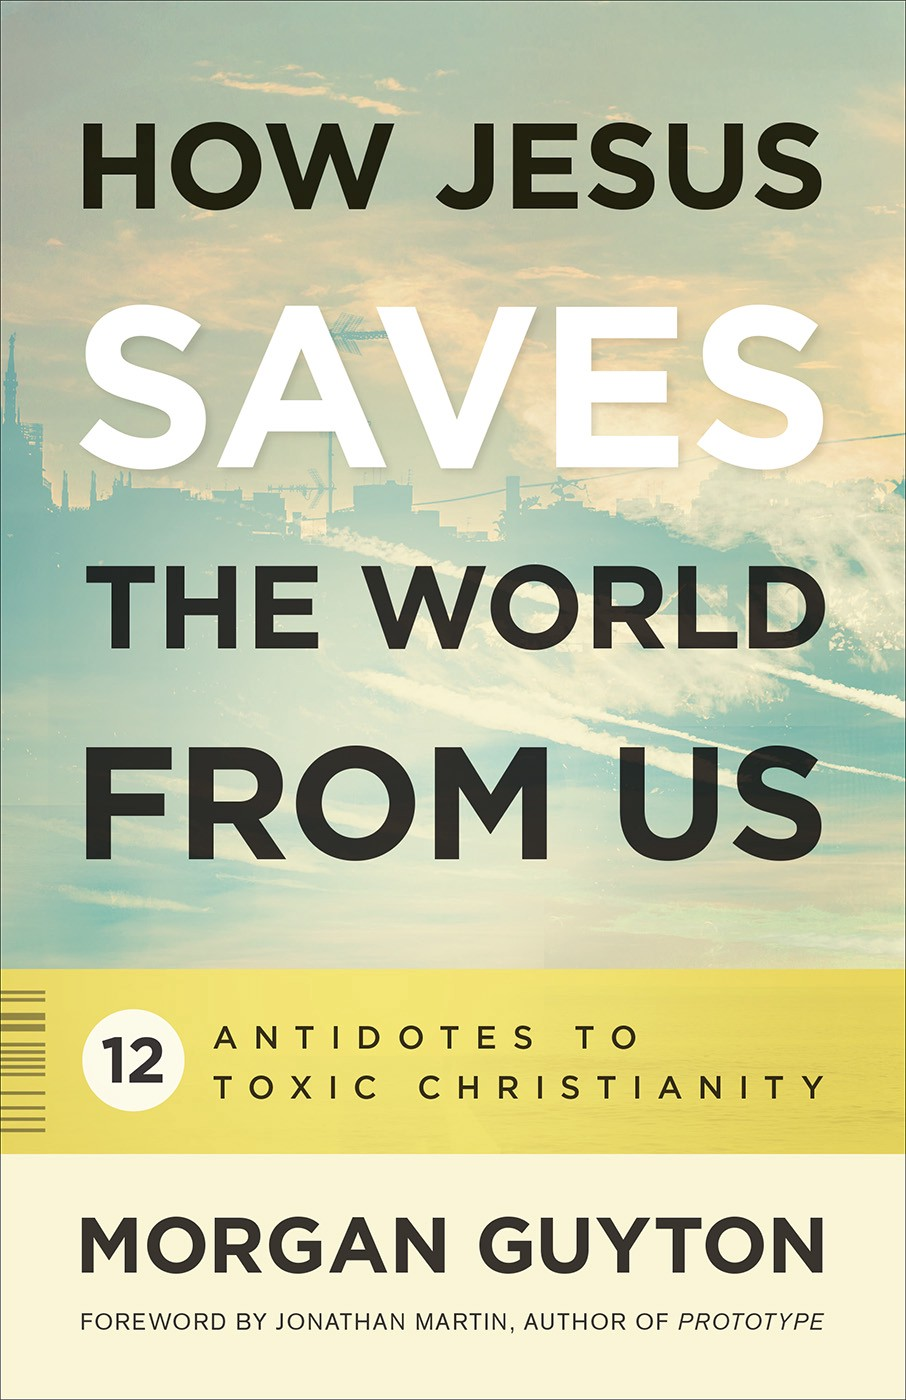 """A Review of Morgan Guyton's """"How Jesus Saves the World from Us: 12  Antidotes to Toxic Christianity"""""""